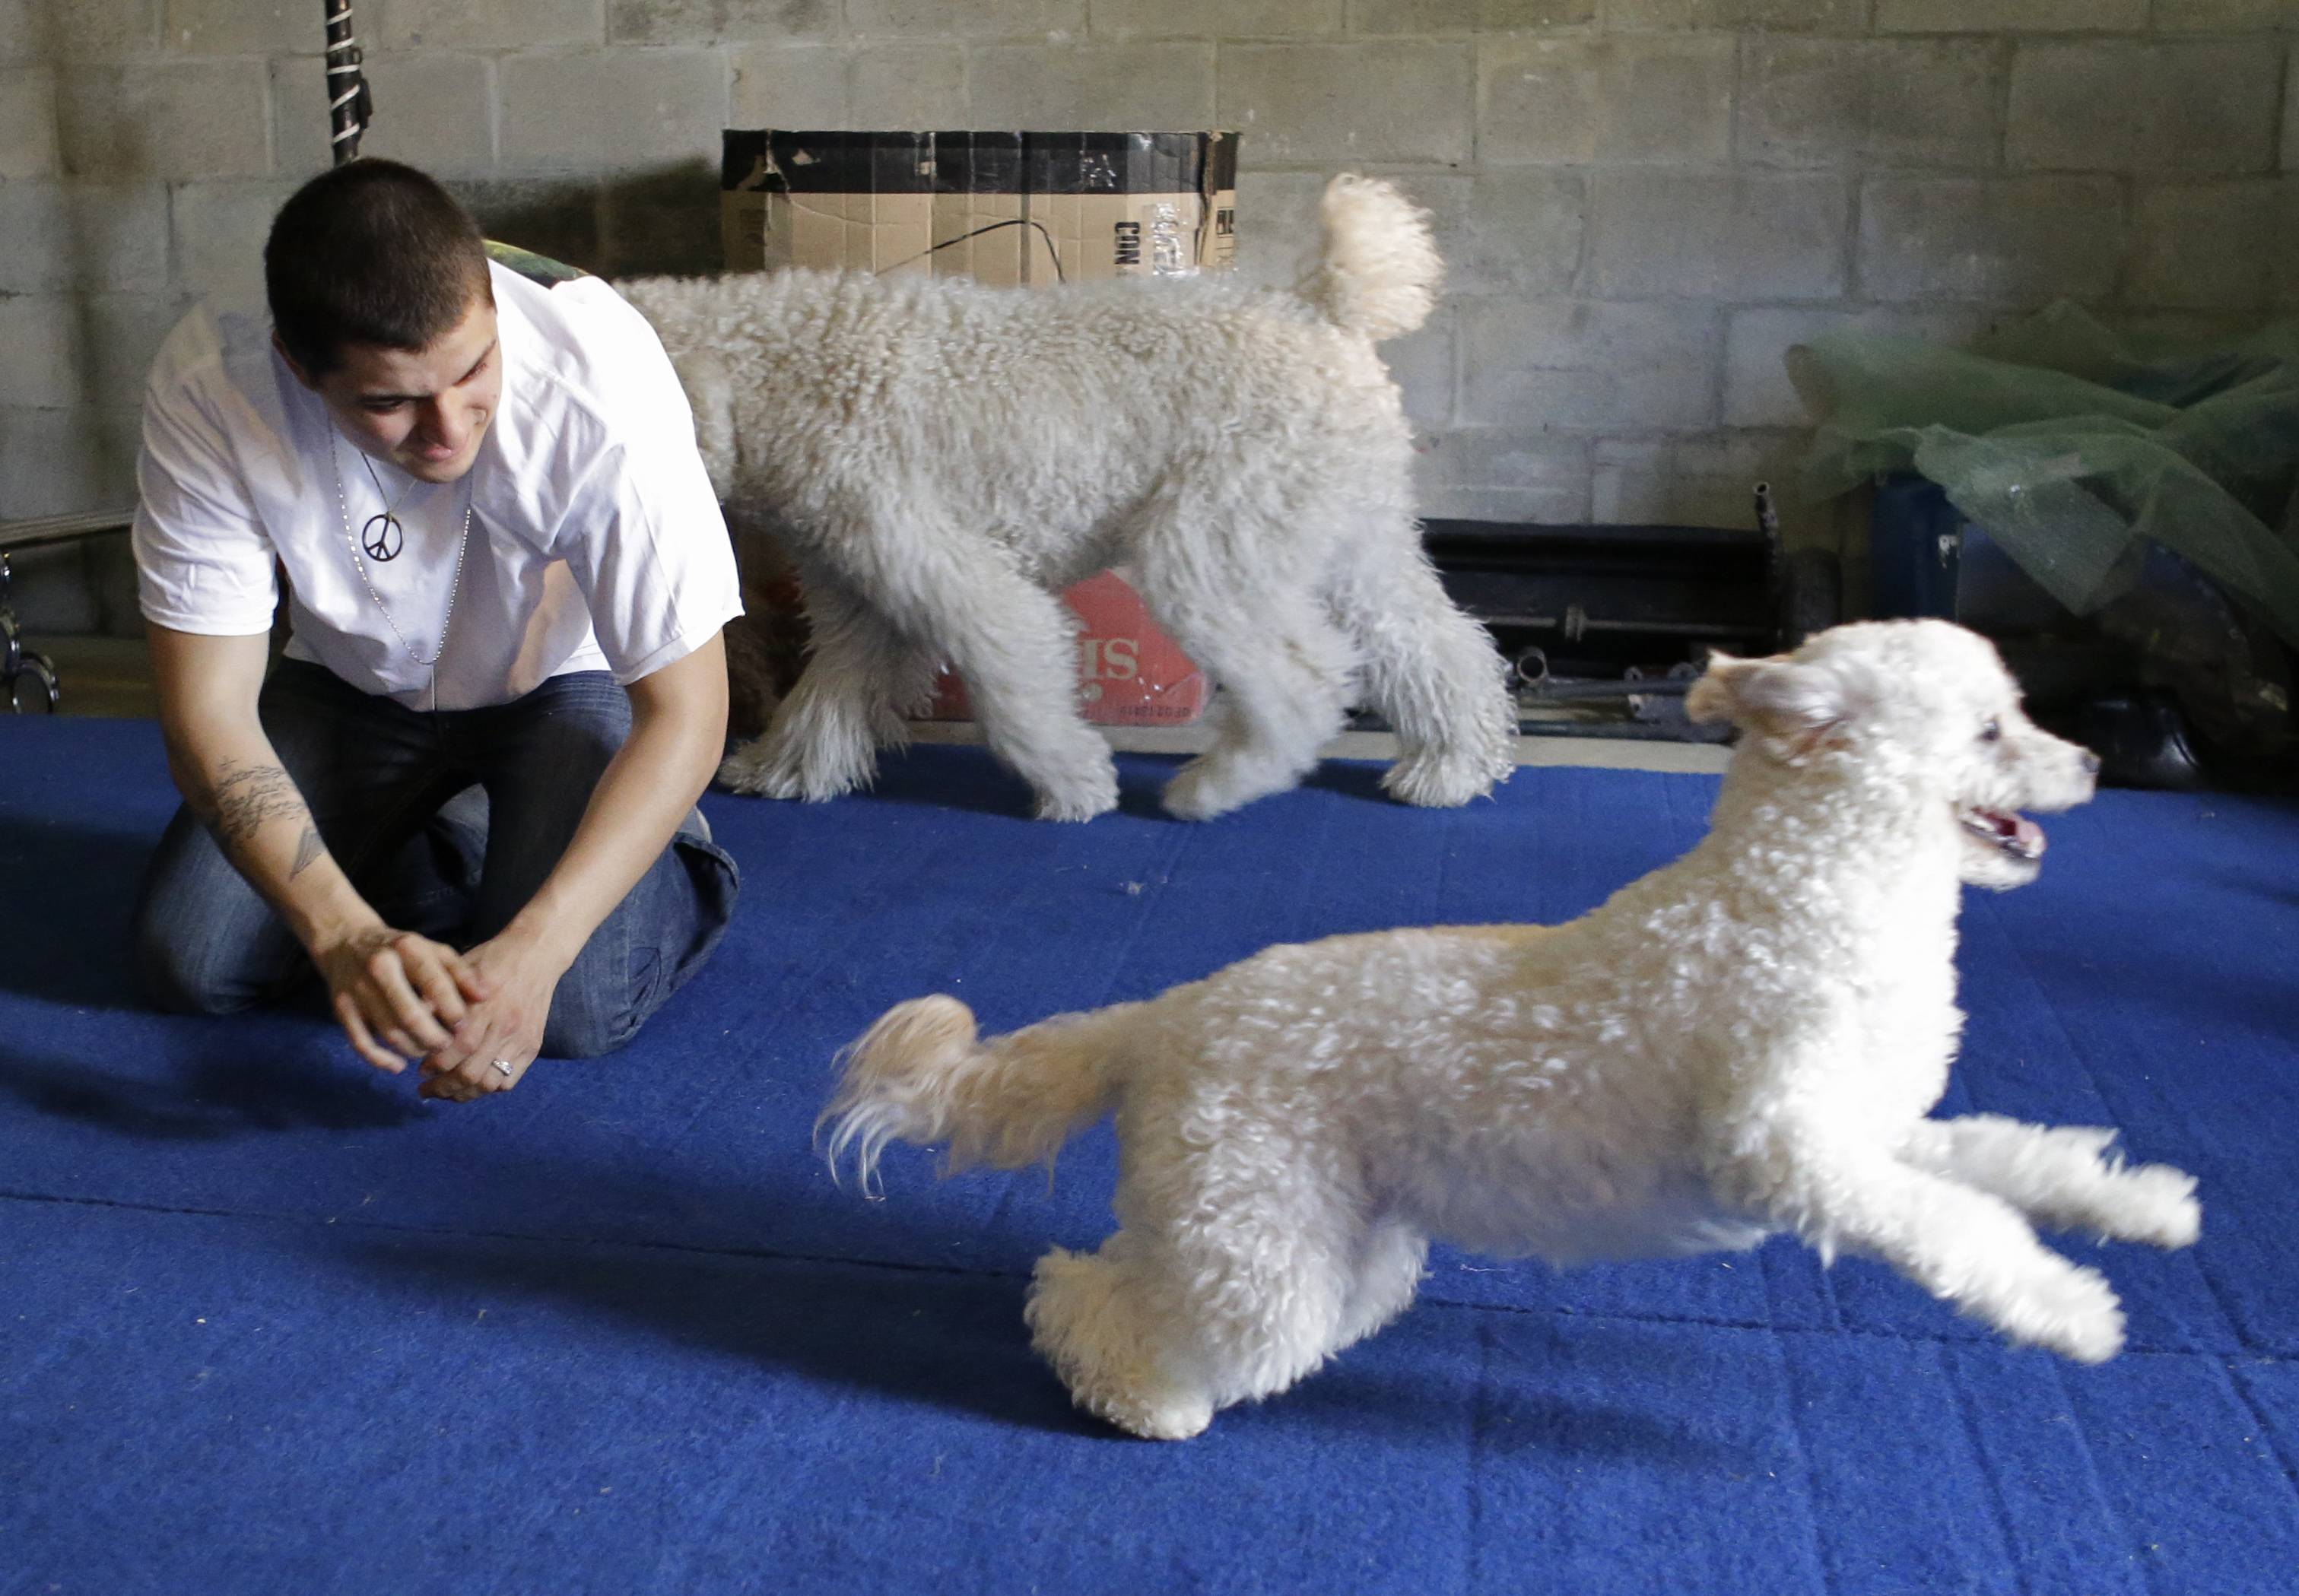 Nicholas Olate plays with dogs Toby, front, and Oso, back, after a training session in Sorrento, Fla. The Olates spend more than 11 months a year on the road performing.